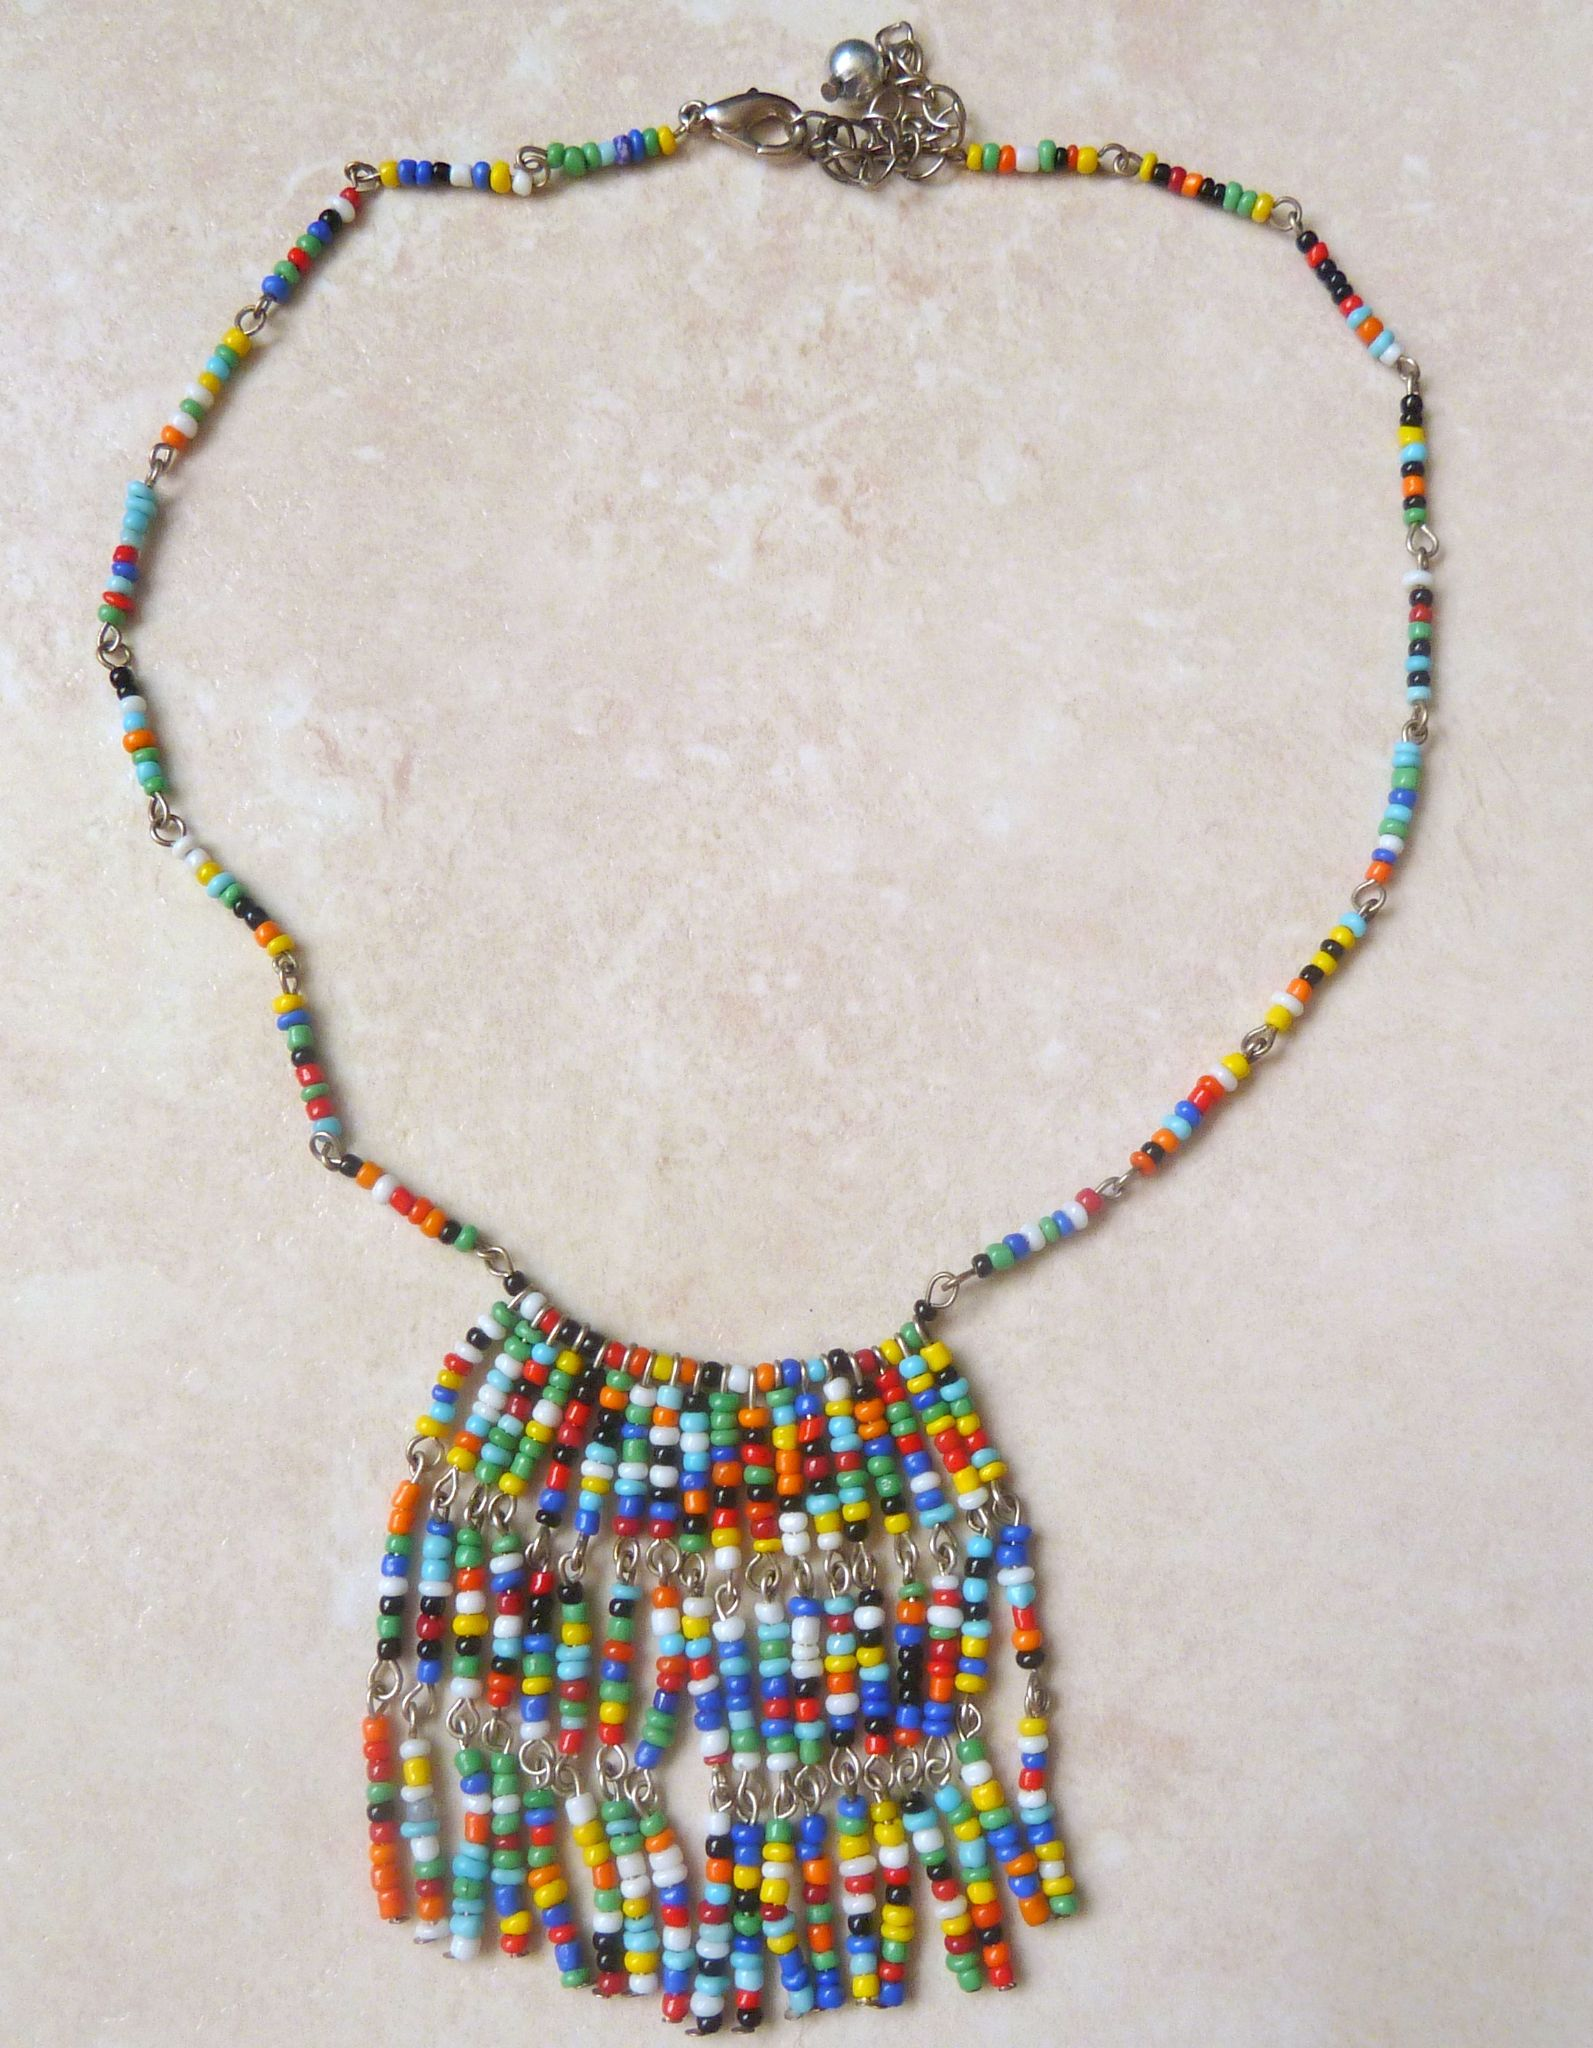 Boho Vibrant Seed Bead Fringe Drop Adjustable Length Necklace